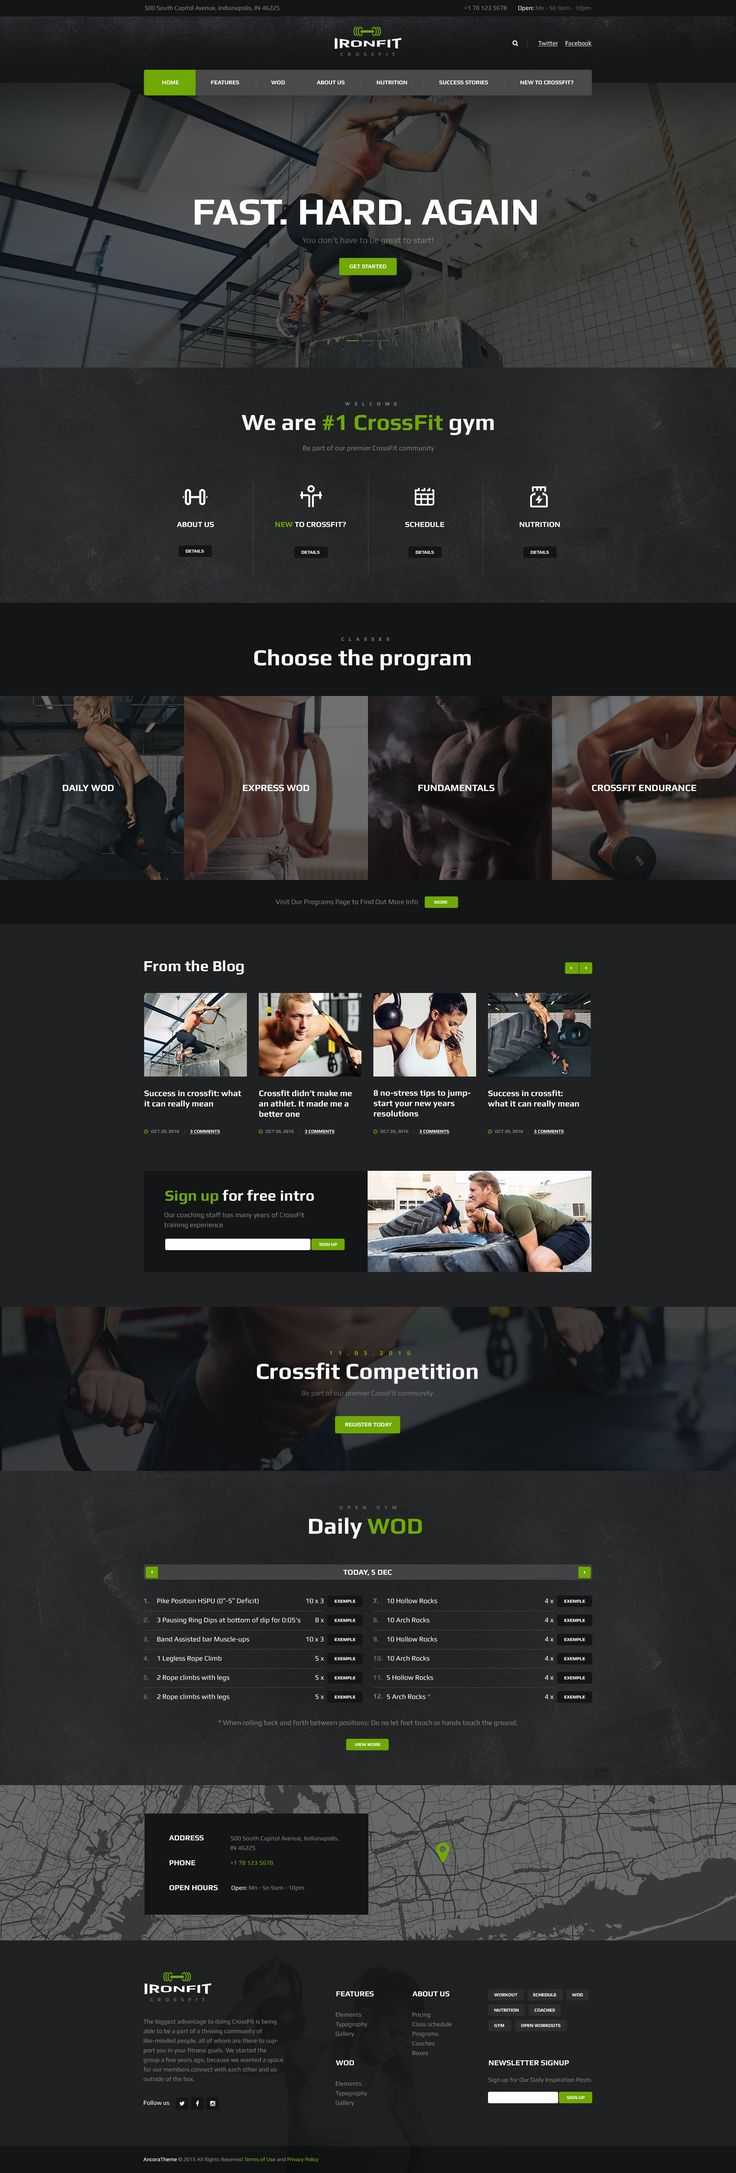 Ironfit has modern and functional design created for #Fitness Industry #website. The Theme is perfectly suitable for #Gyms, CrossFit boxes, Fitness Clubs, Personal Trainers, Health Centers and other s